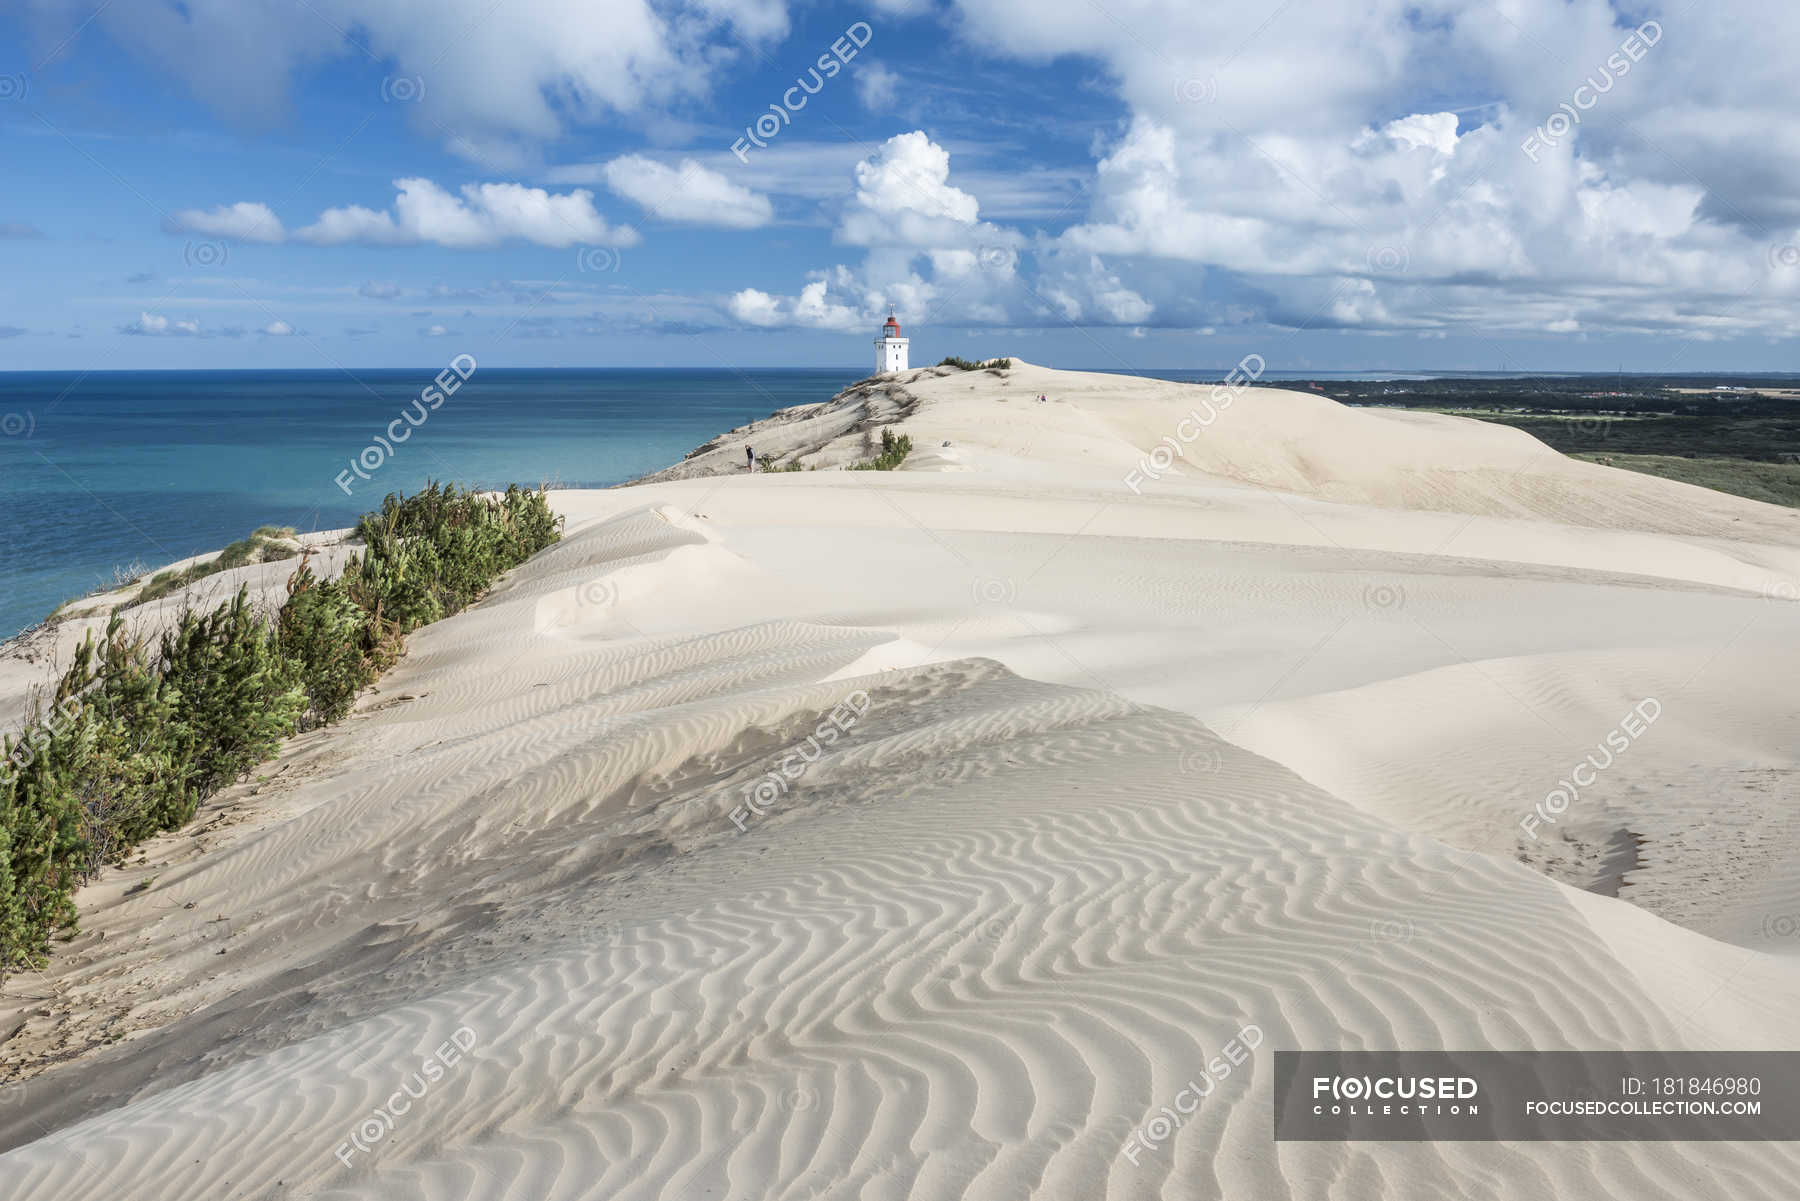 Denmark Beach Dunes And Seascape With Lighthouse On Background Sky Tranquility Stock Photo 181846980